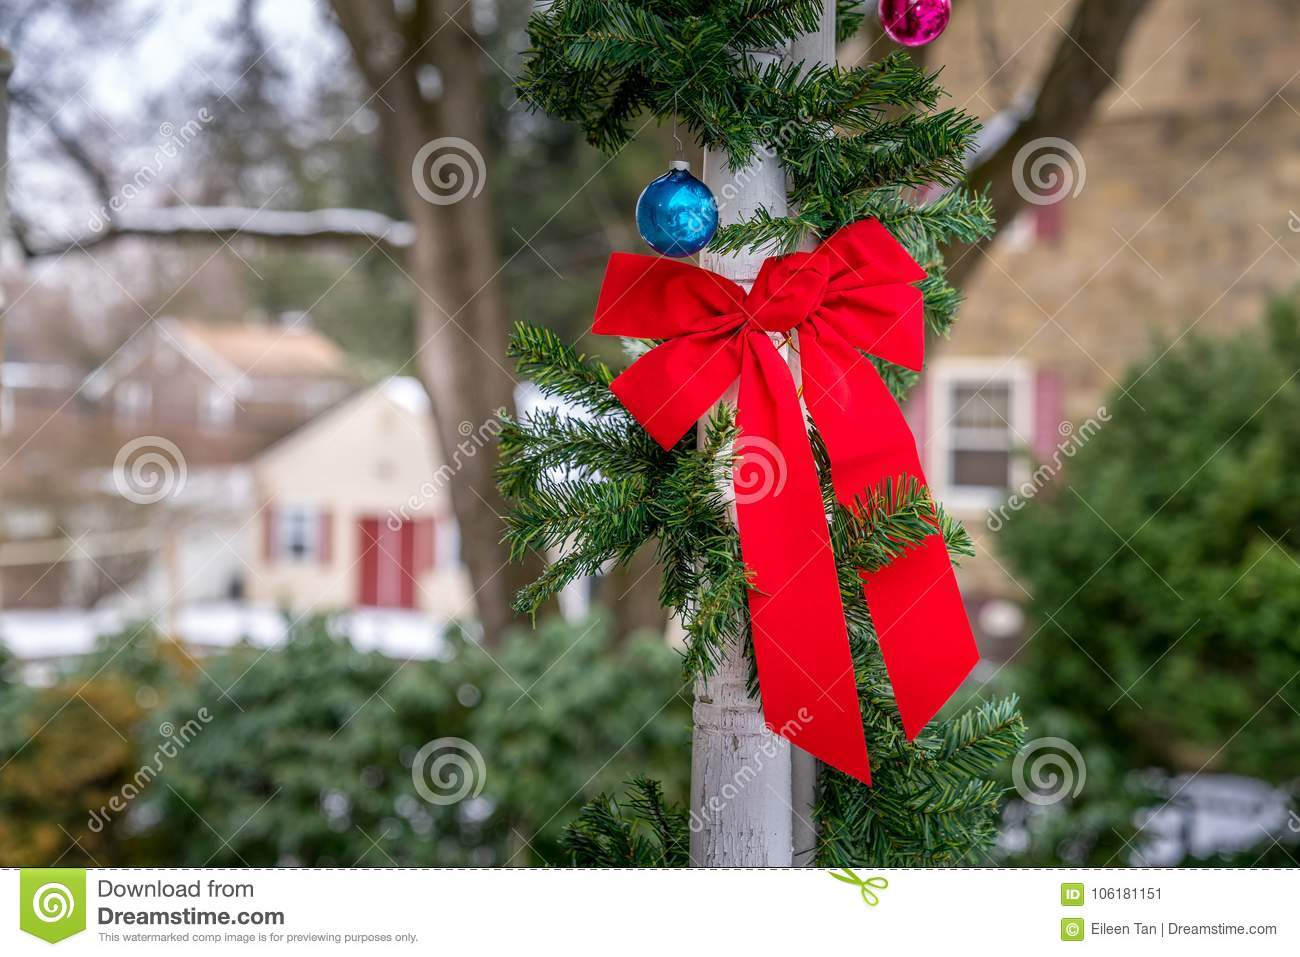 download outdoor christmas decorations stock image image of snow cold 106181151